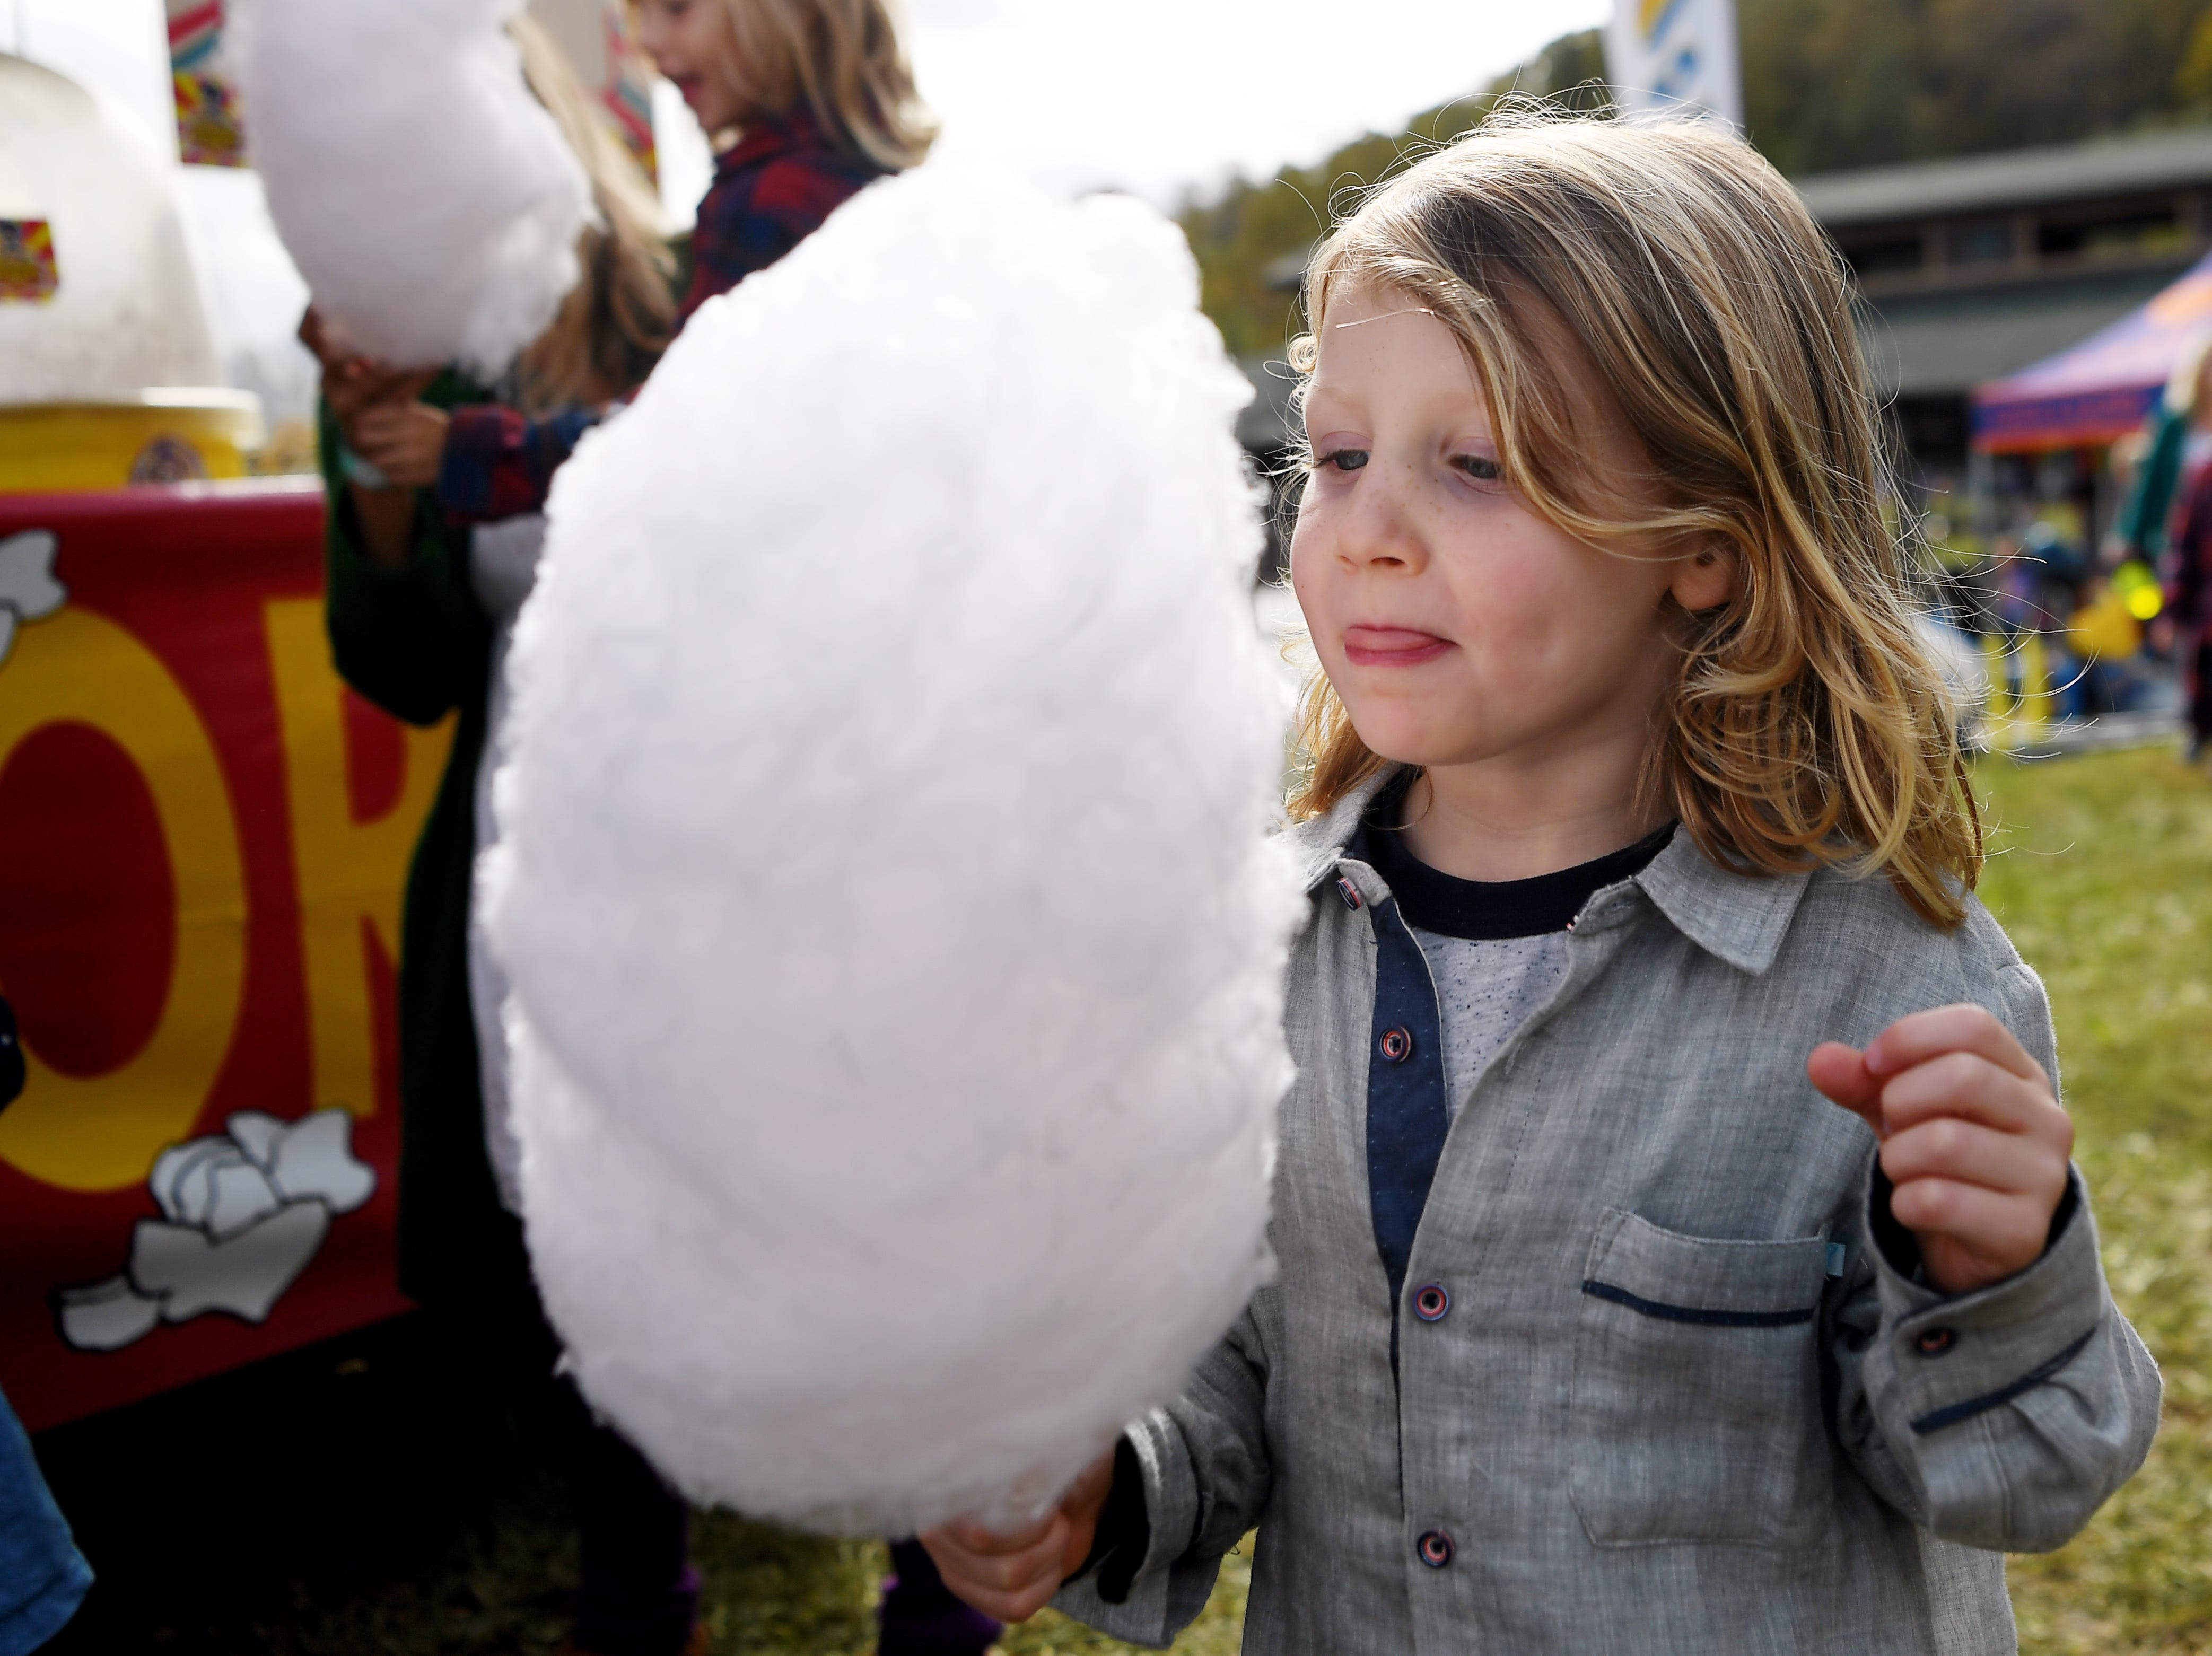 Foster Mitchell, 4, eats cotton candy at the Lake Eden Arts Festival in Black Mountain Oct. 20, 2018.